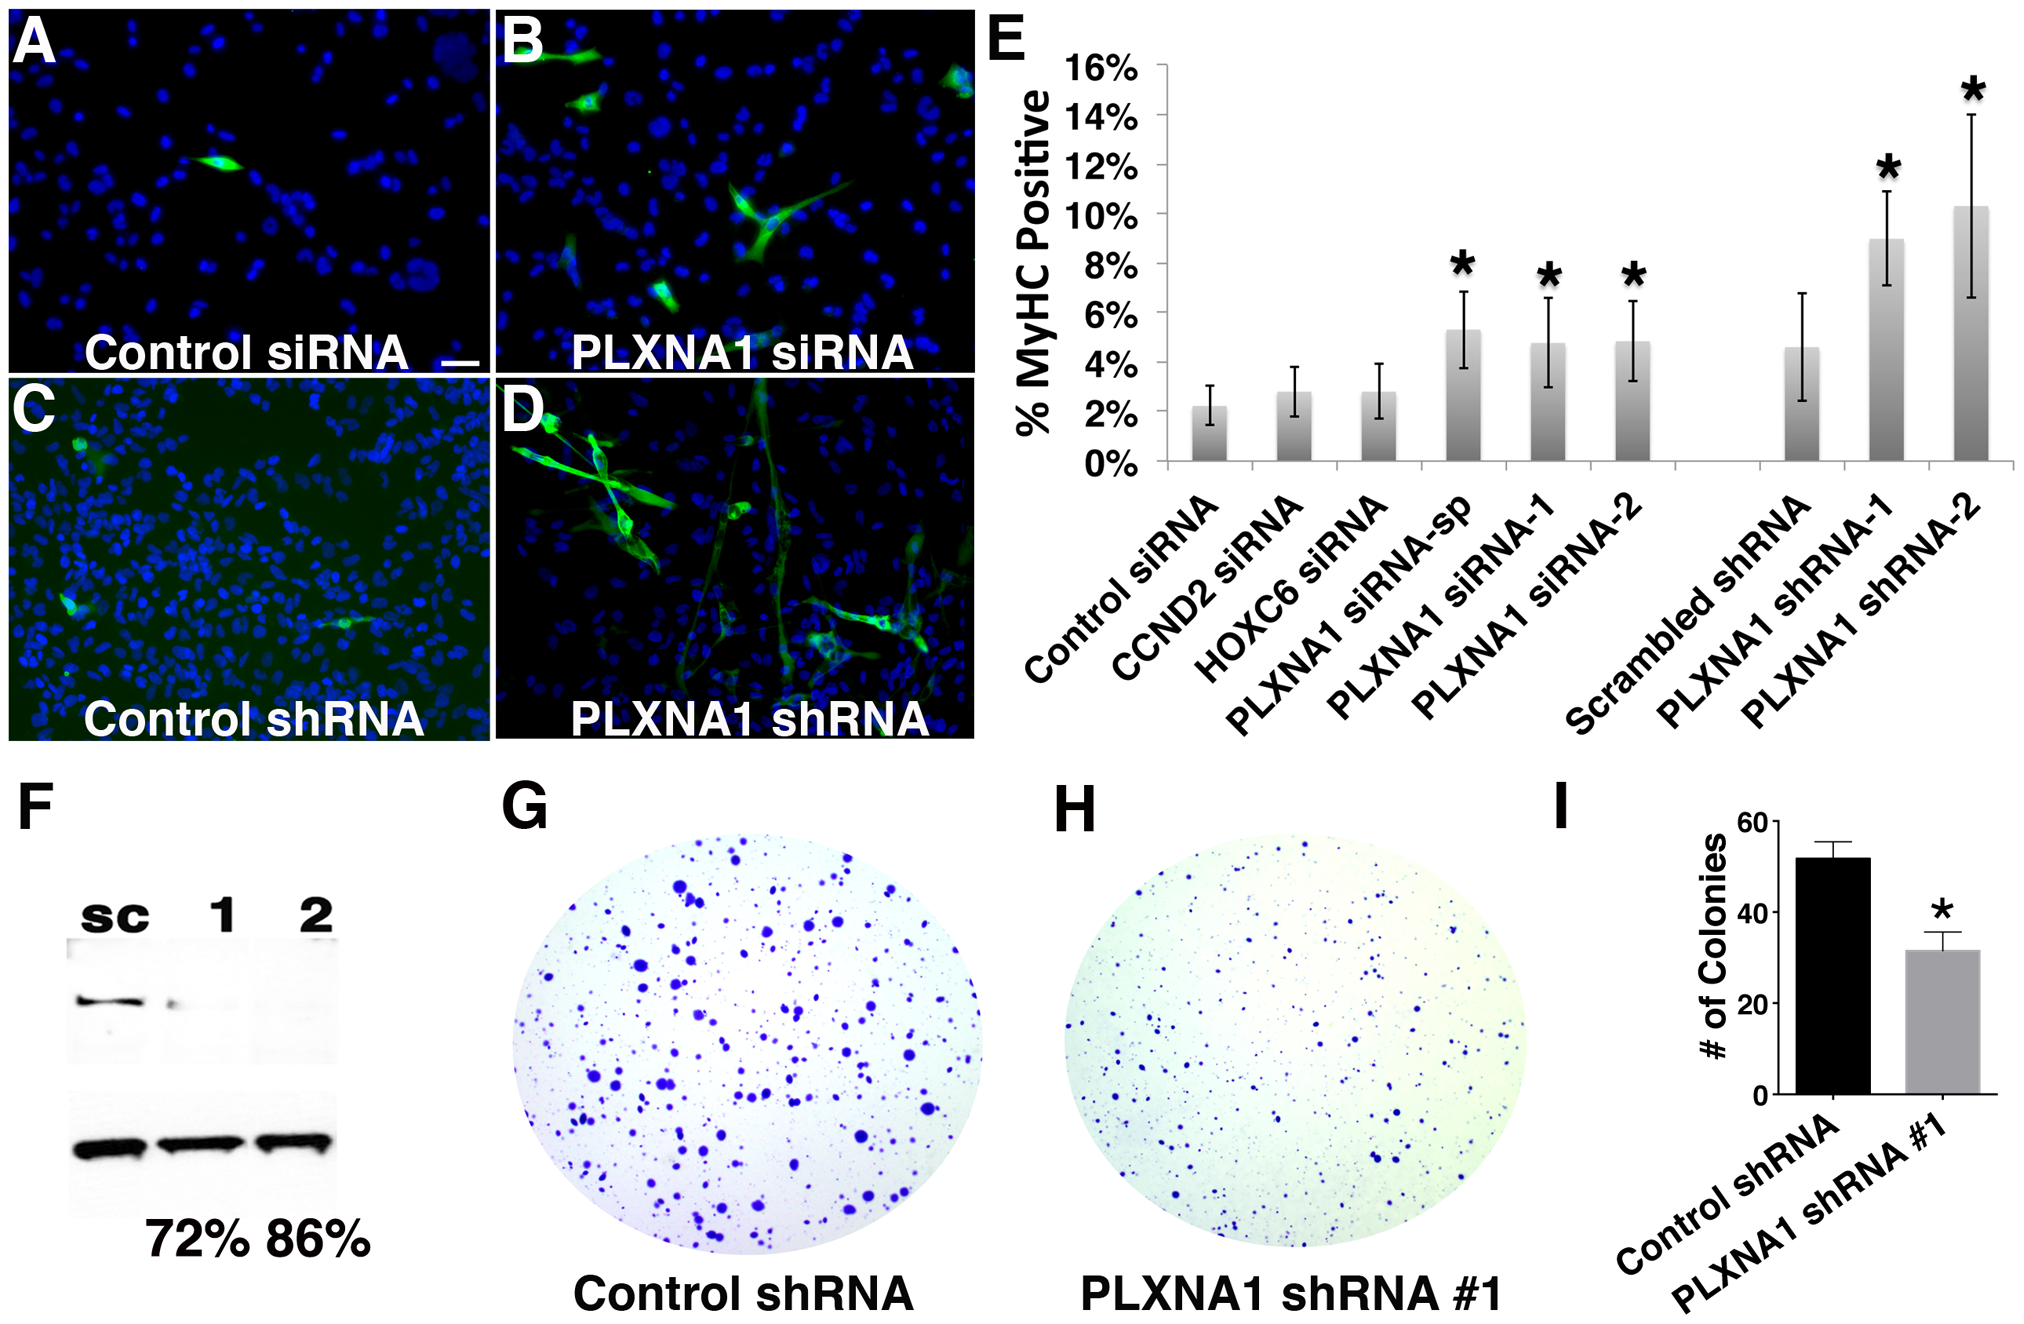 Knockdown of PLXNA1 induced differentiation and impaired anchorage-independent growth of human ERMS cells.